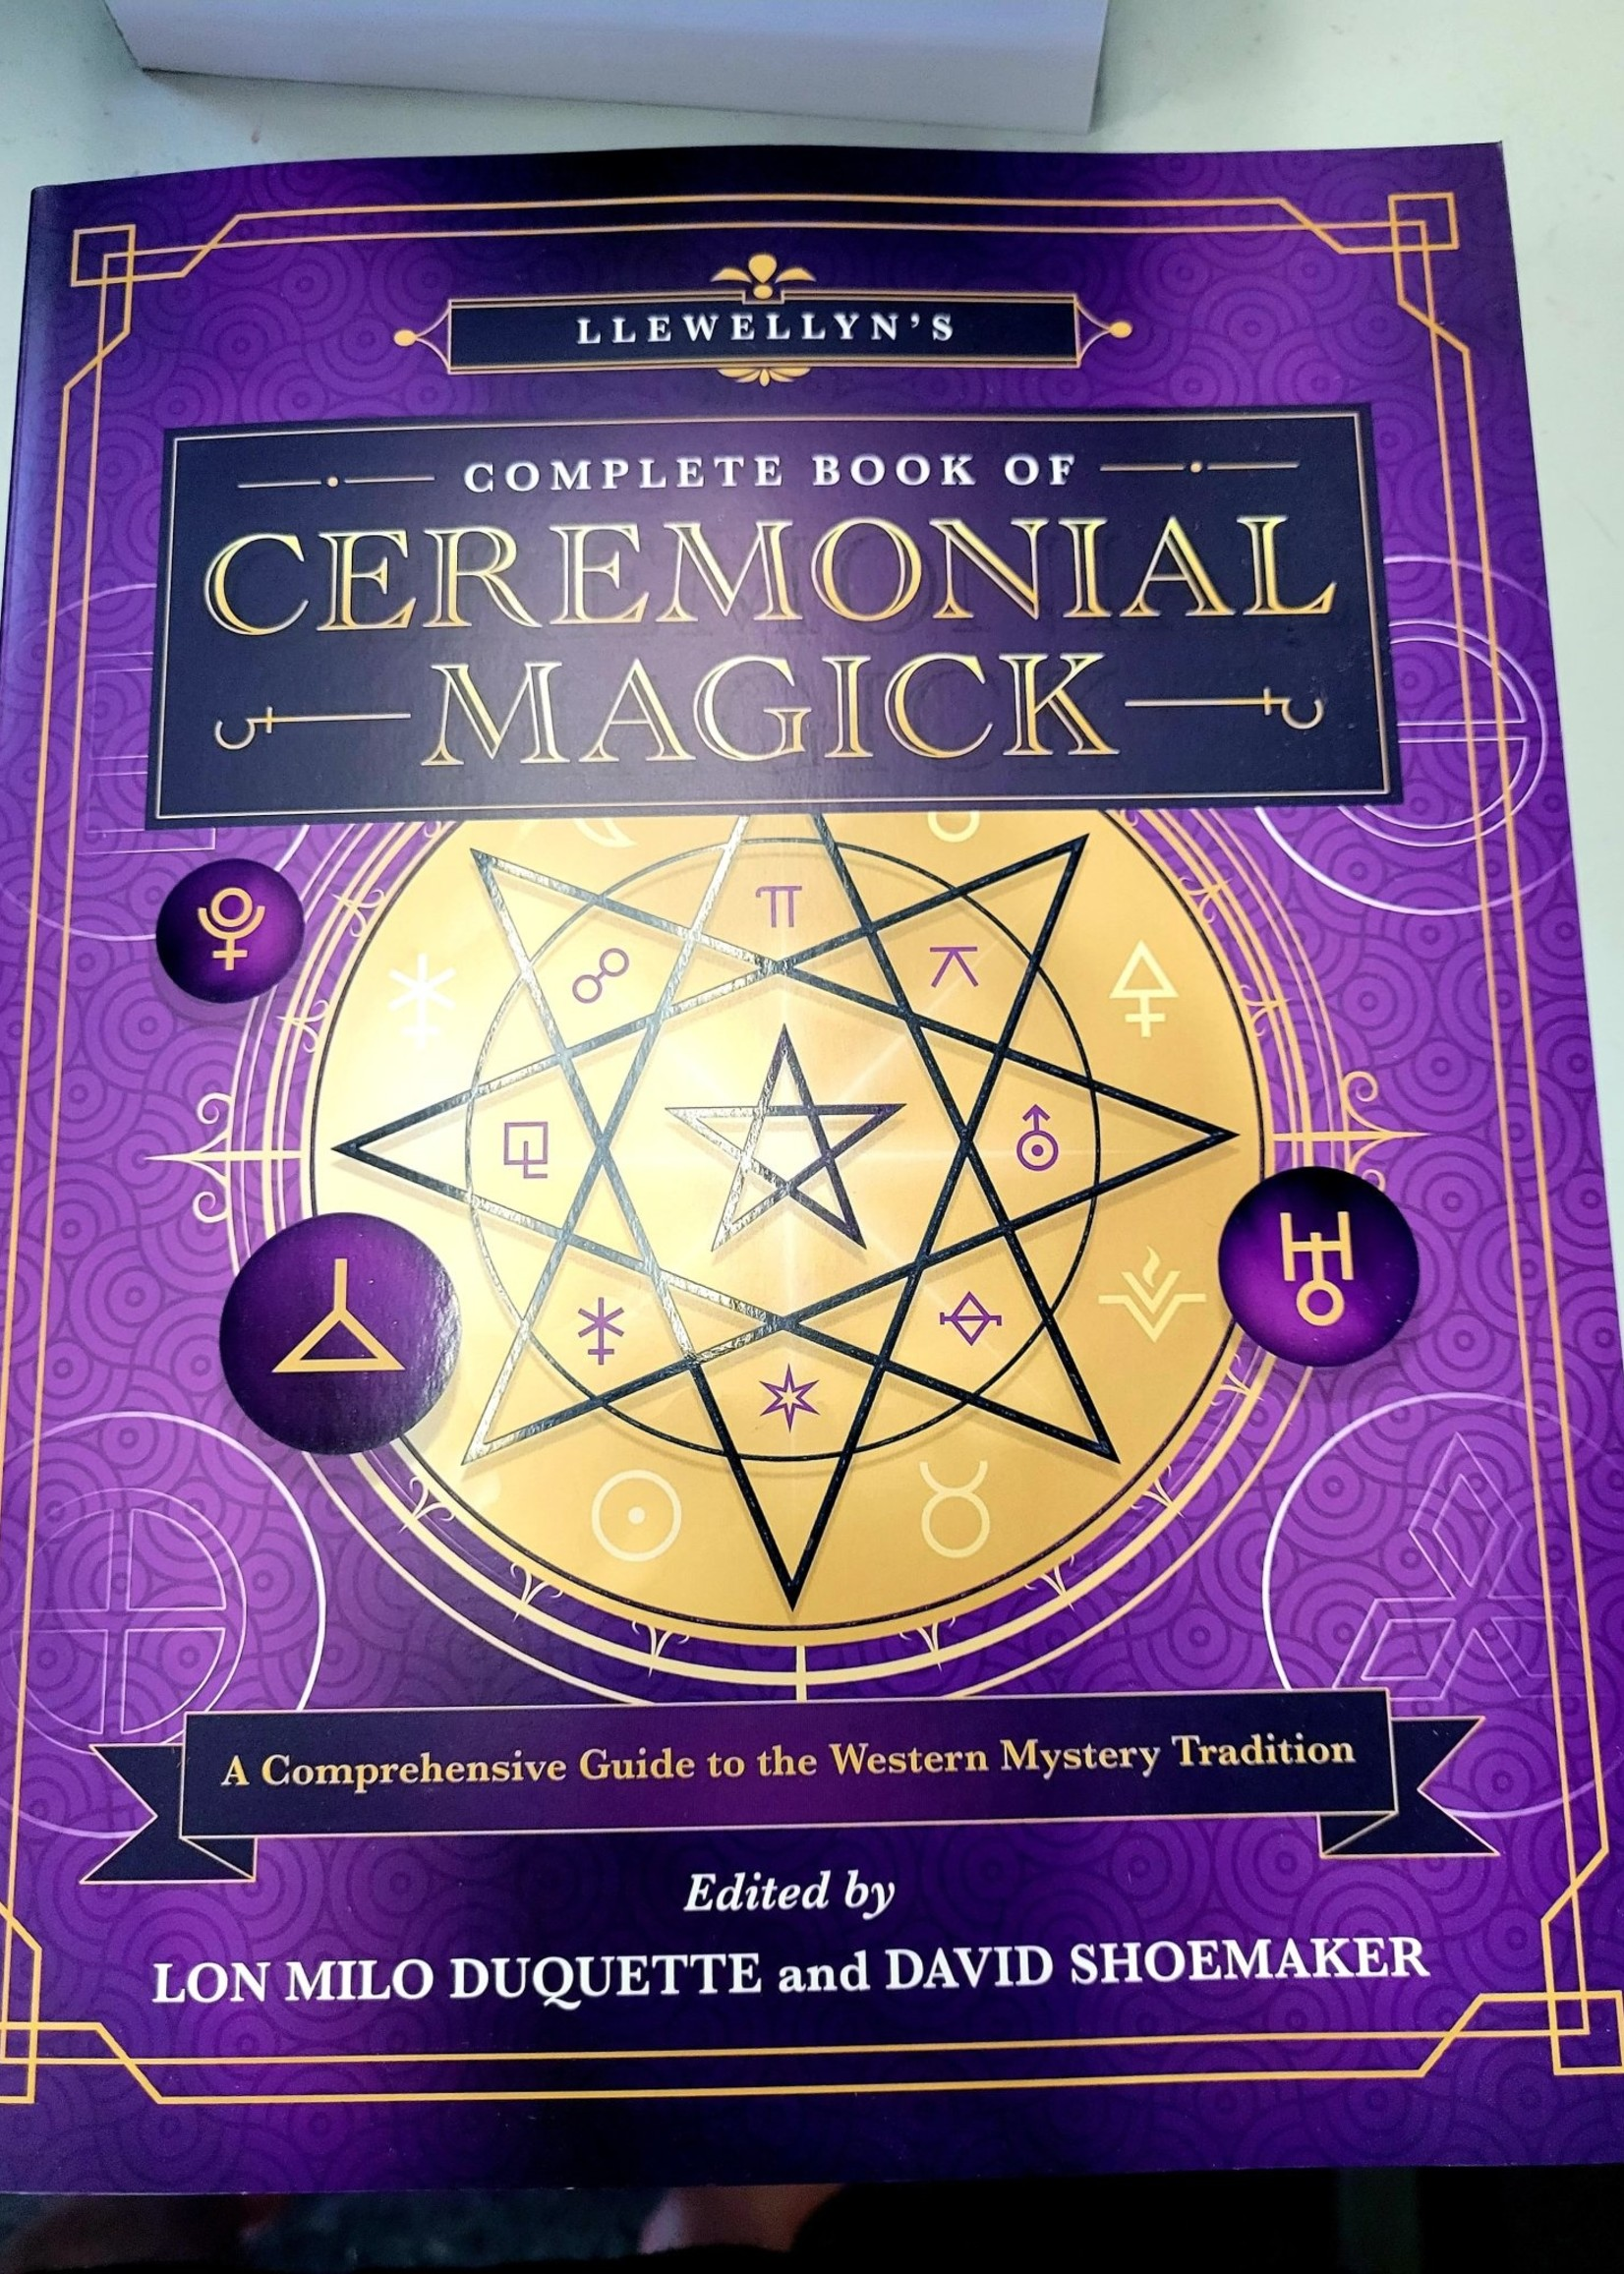 Llewellyn's Complete Book of Ceremonial Magick - BY LON MILO DUQUETTE, DAVID SHOEMAKER, DR STEPHEN SKINNER, DENNIS WILLIAM HAUCK, and many more...